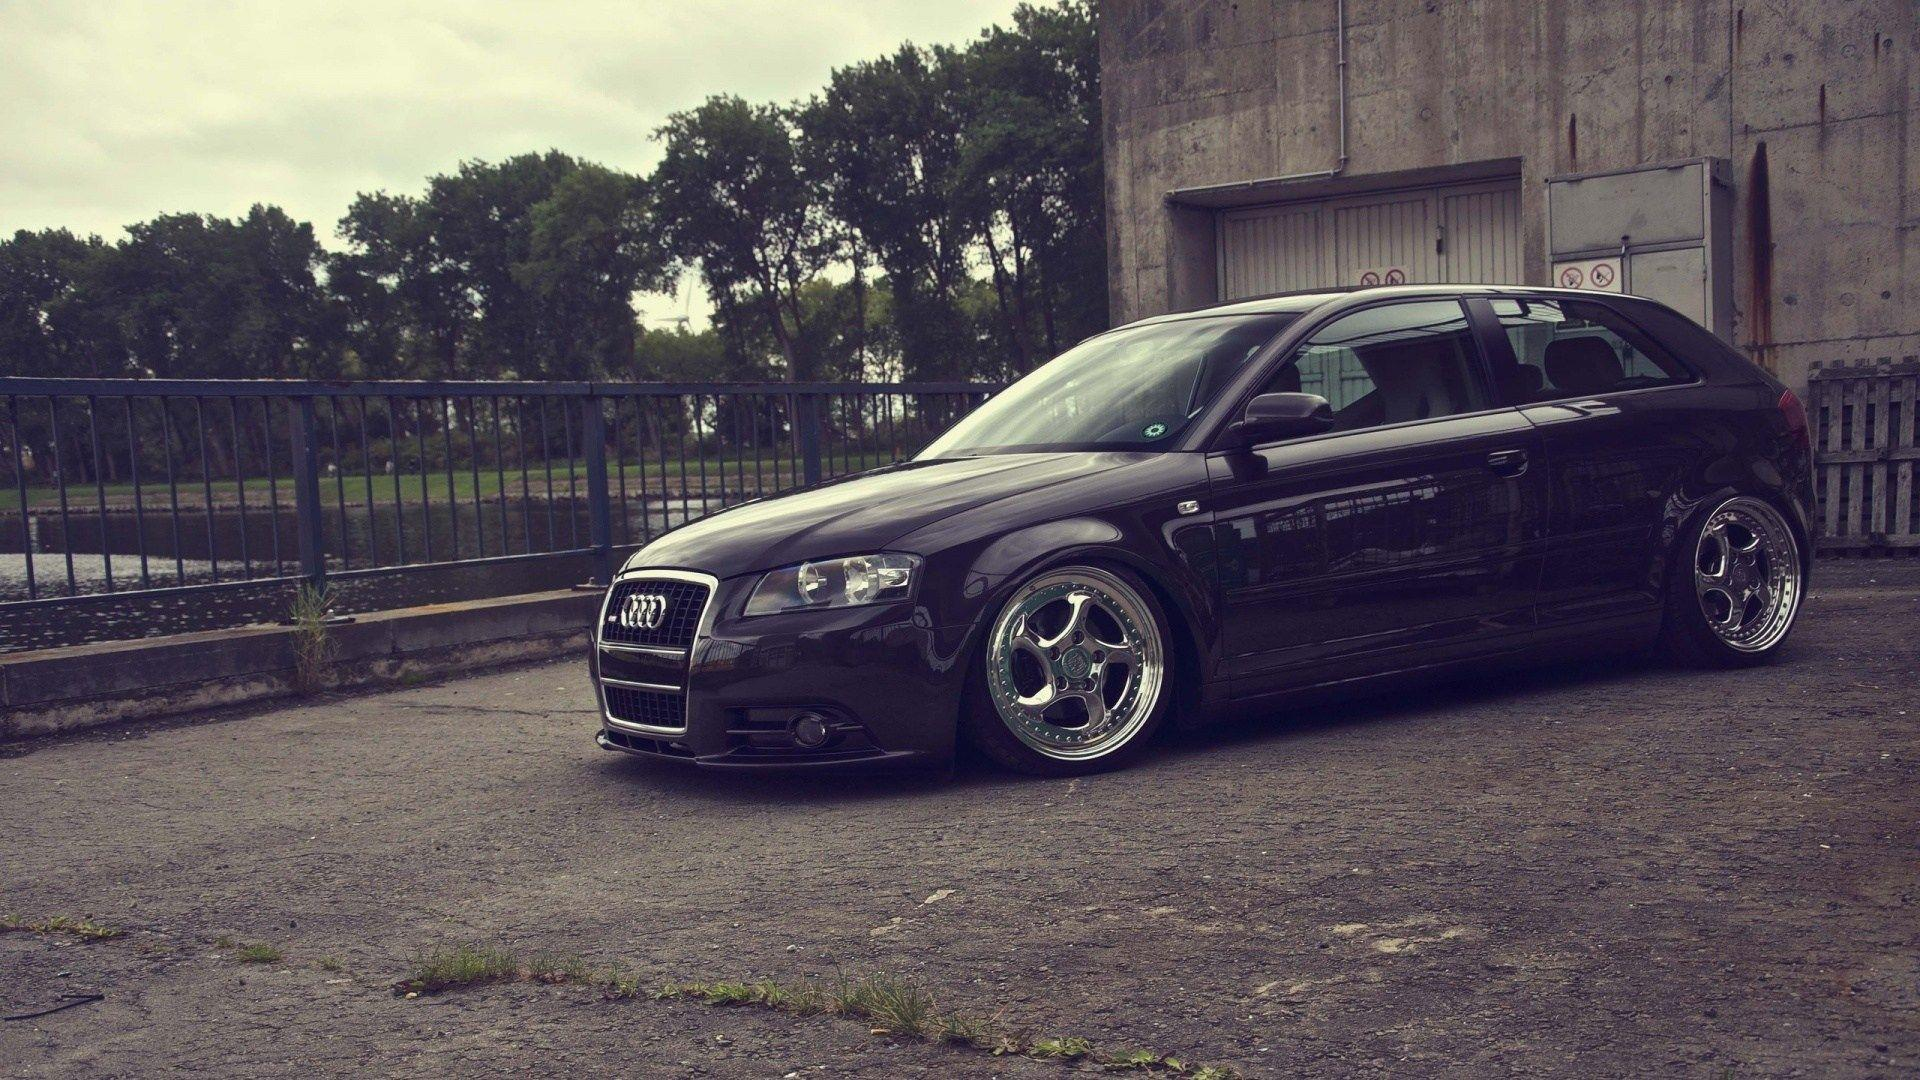 Tuned Black Audi A3 Wallpapers 36023 1920x1080 Jpg - illinois-liver